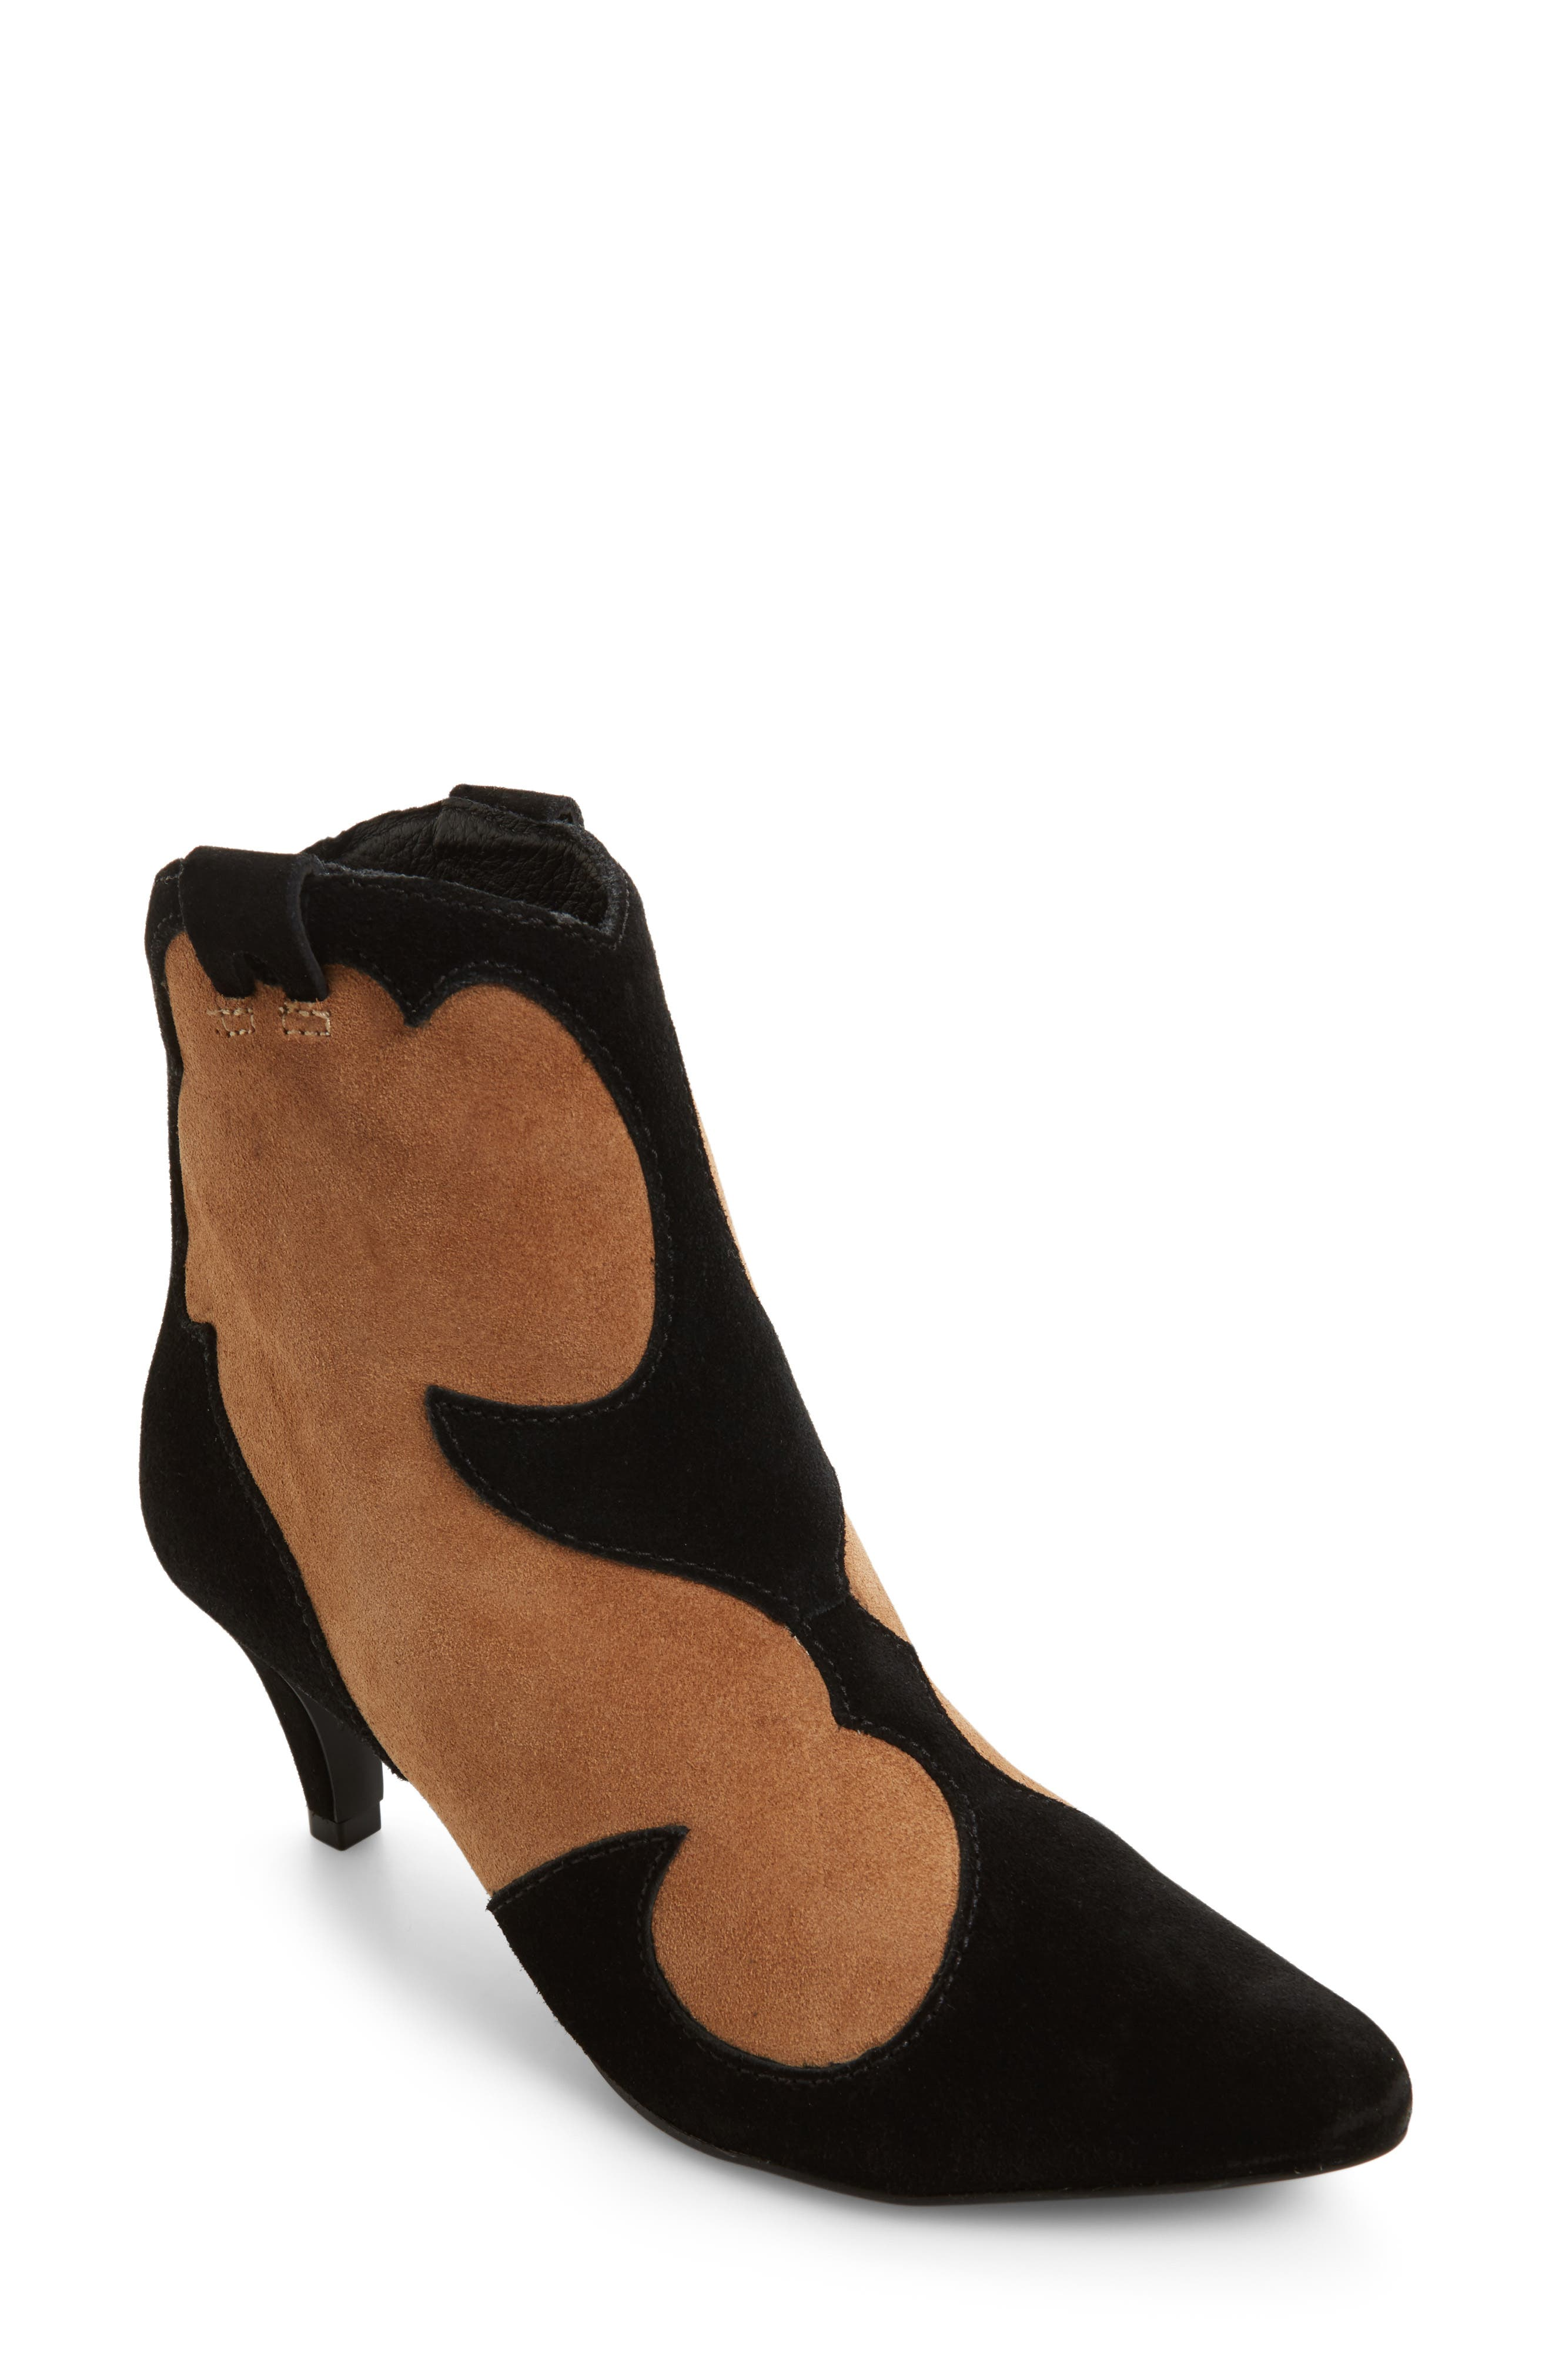 Main Image - Matisse Majesty Two-Tone Bootie (Women)